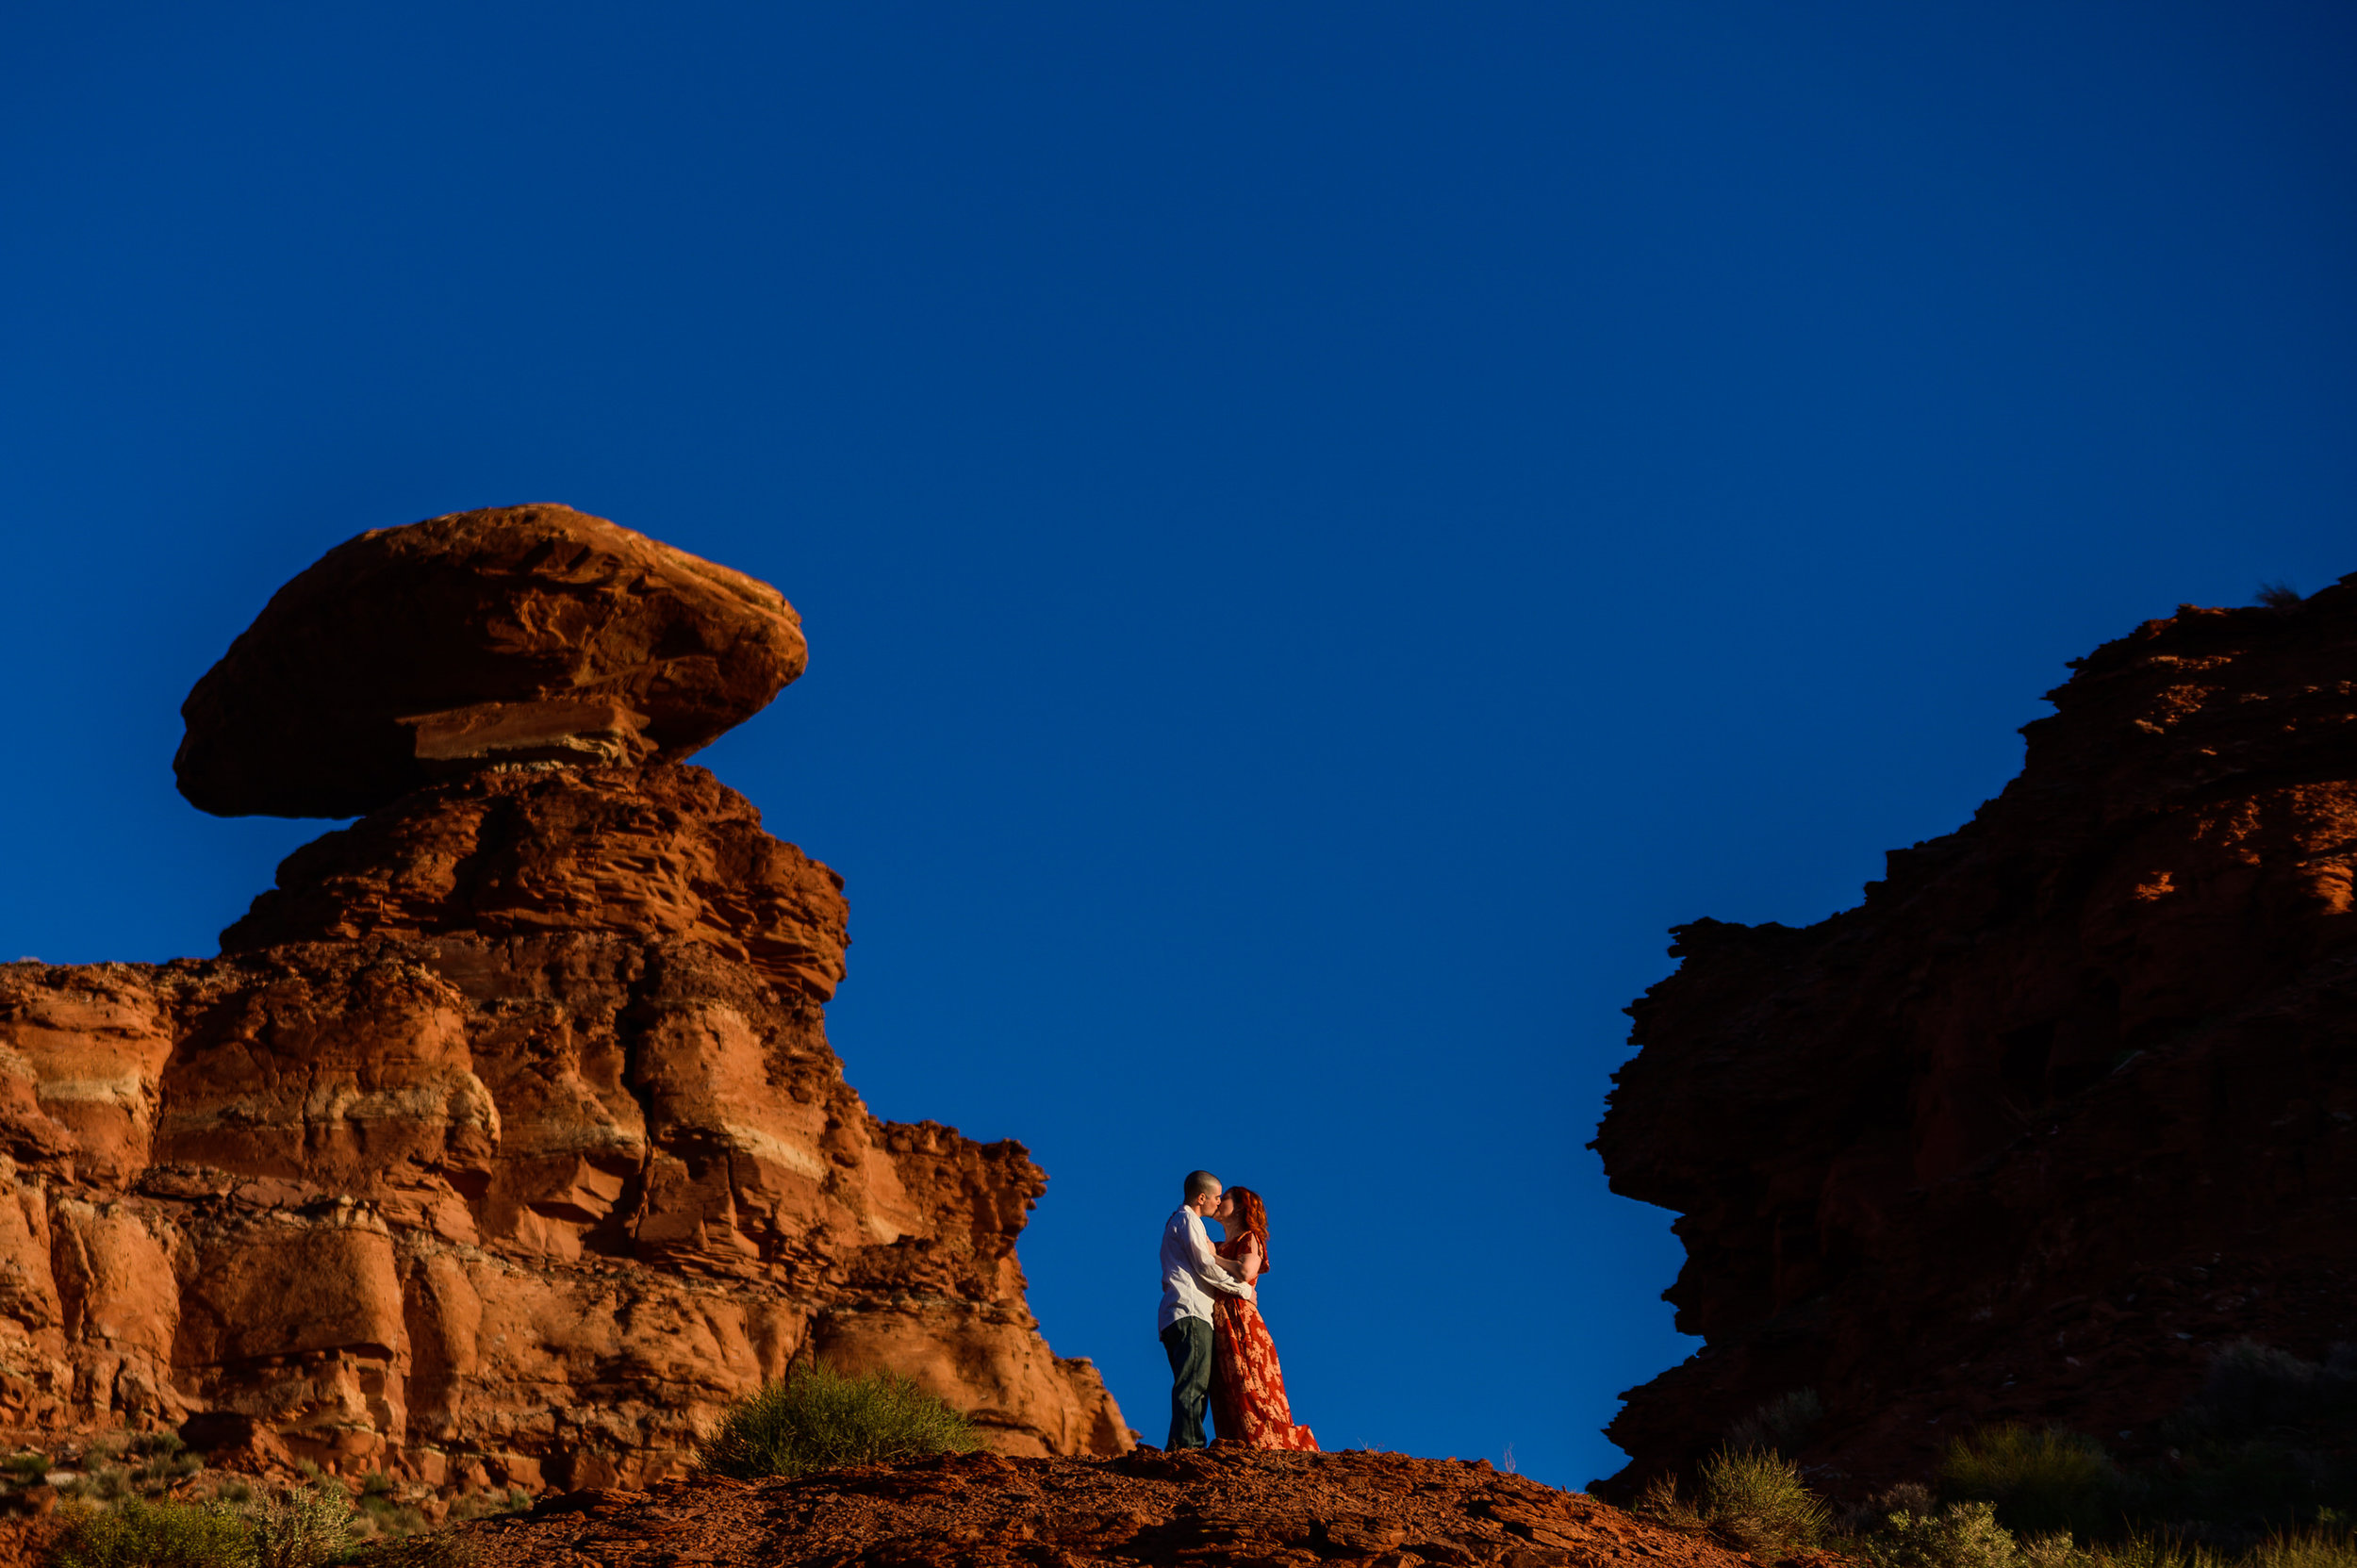 MonumentValleyEngagement-Alicia&Rob-9577.jpg